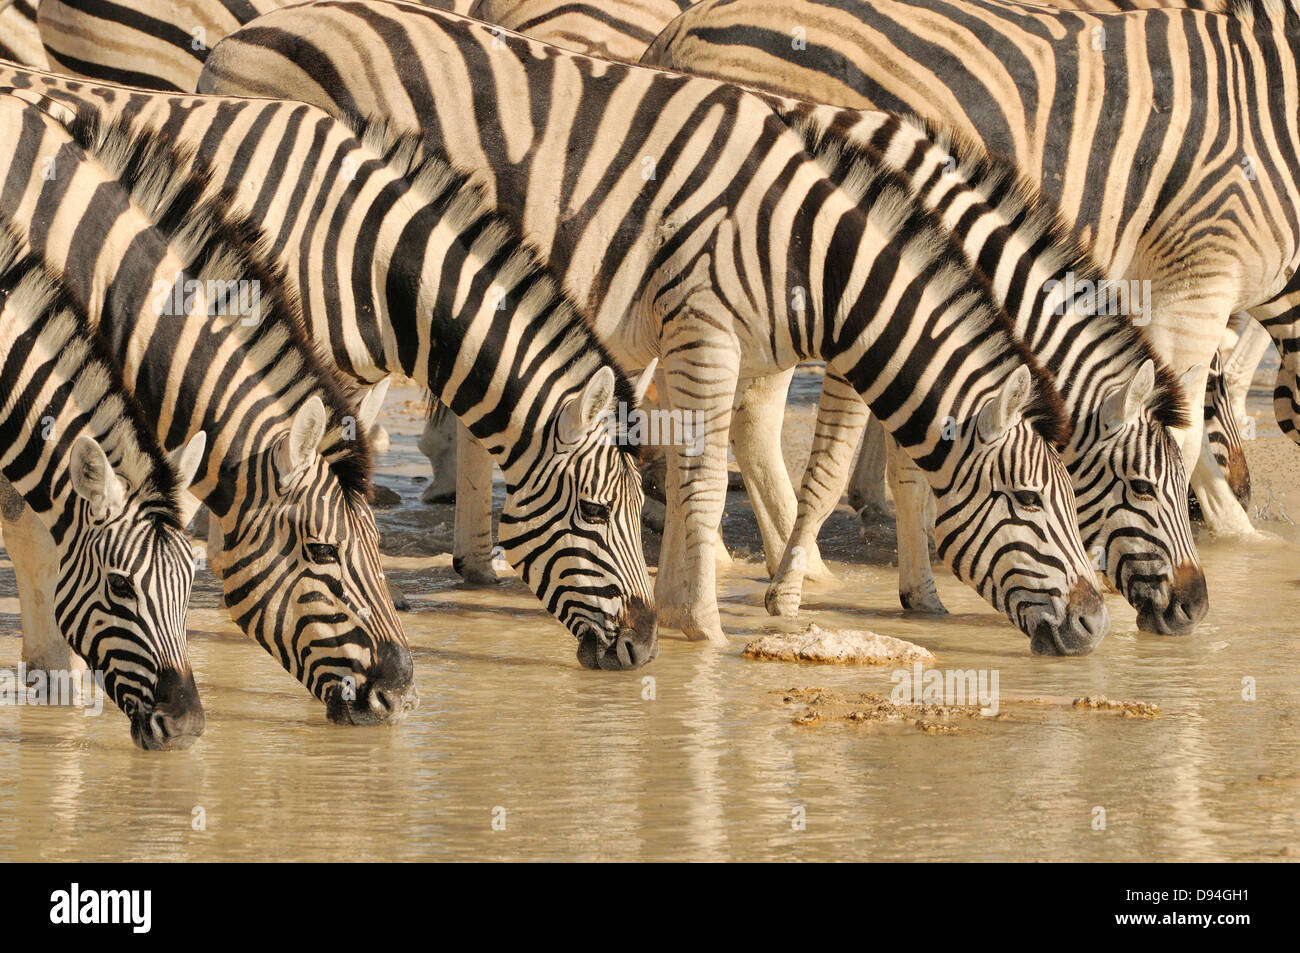 Burchell's Zebra Equus quagga burchellii Drinking at water hole Photographed in Etosha National Park, Namibia - Stock Image